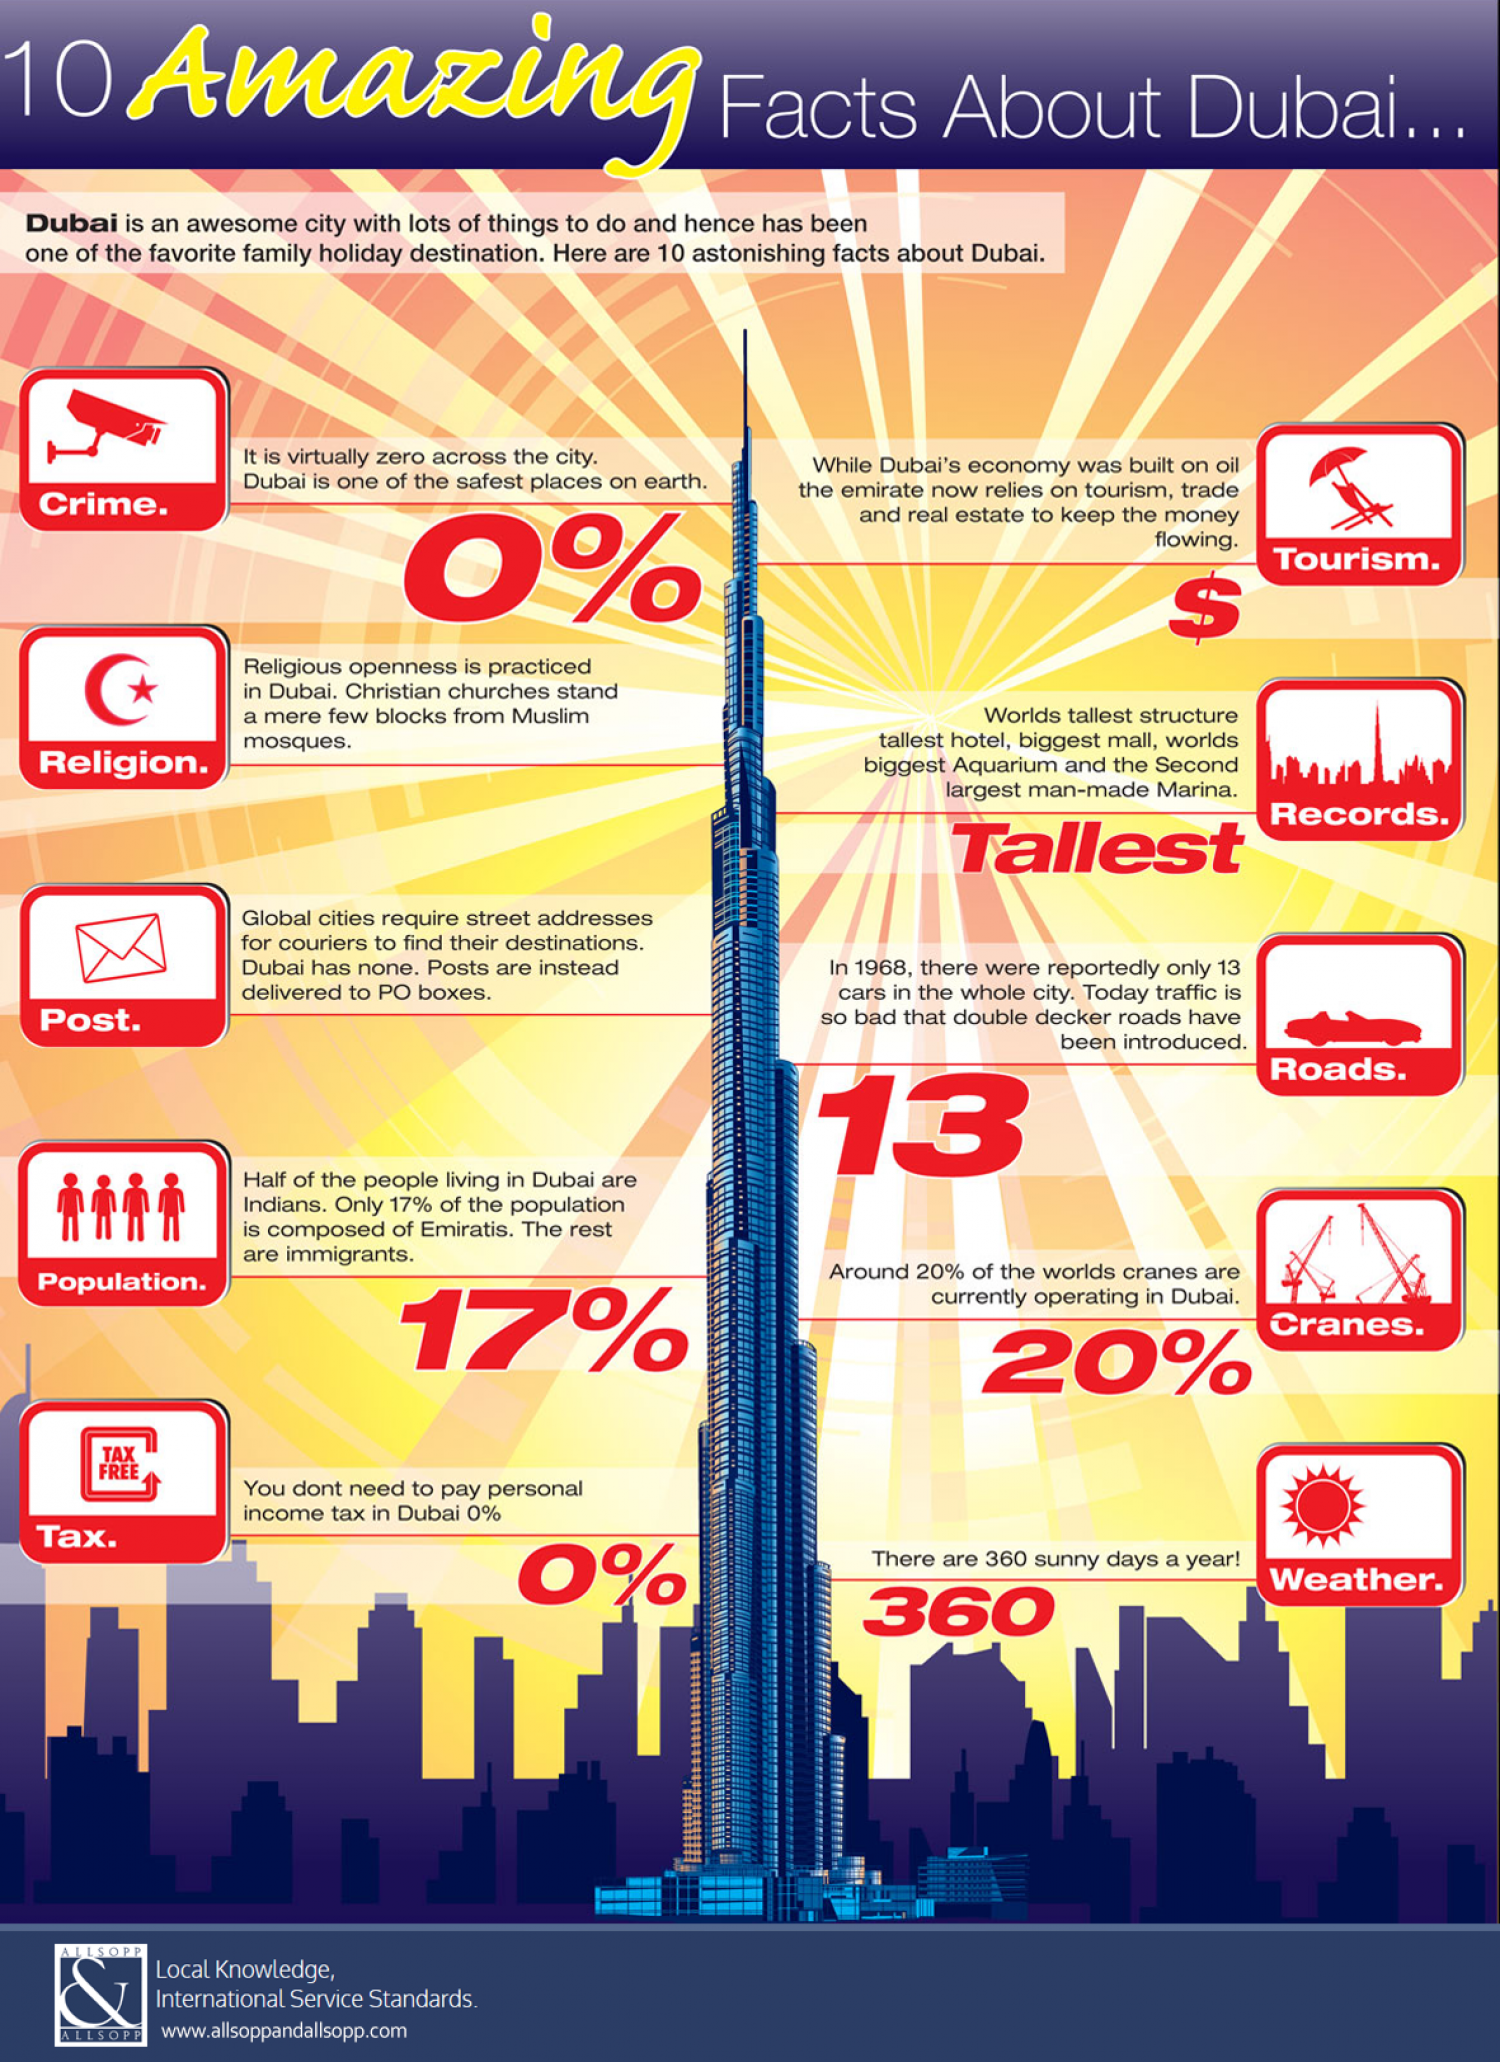 Facts About Dubai Infographic